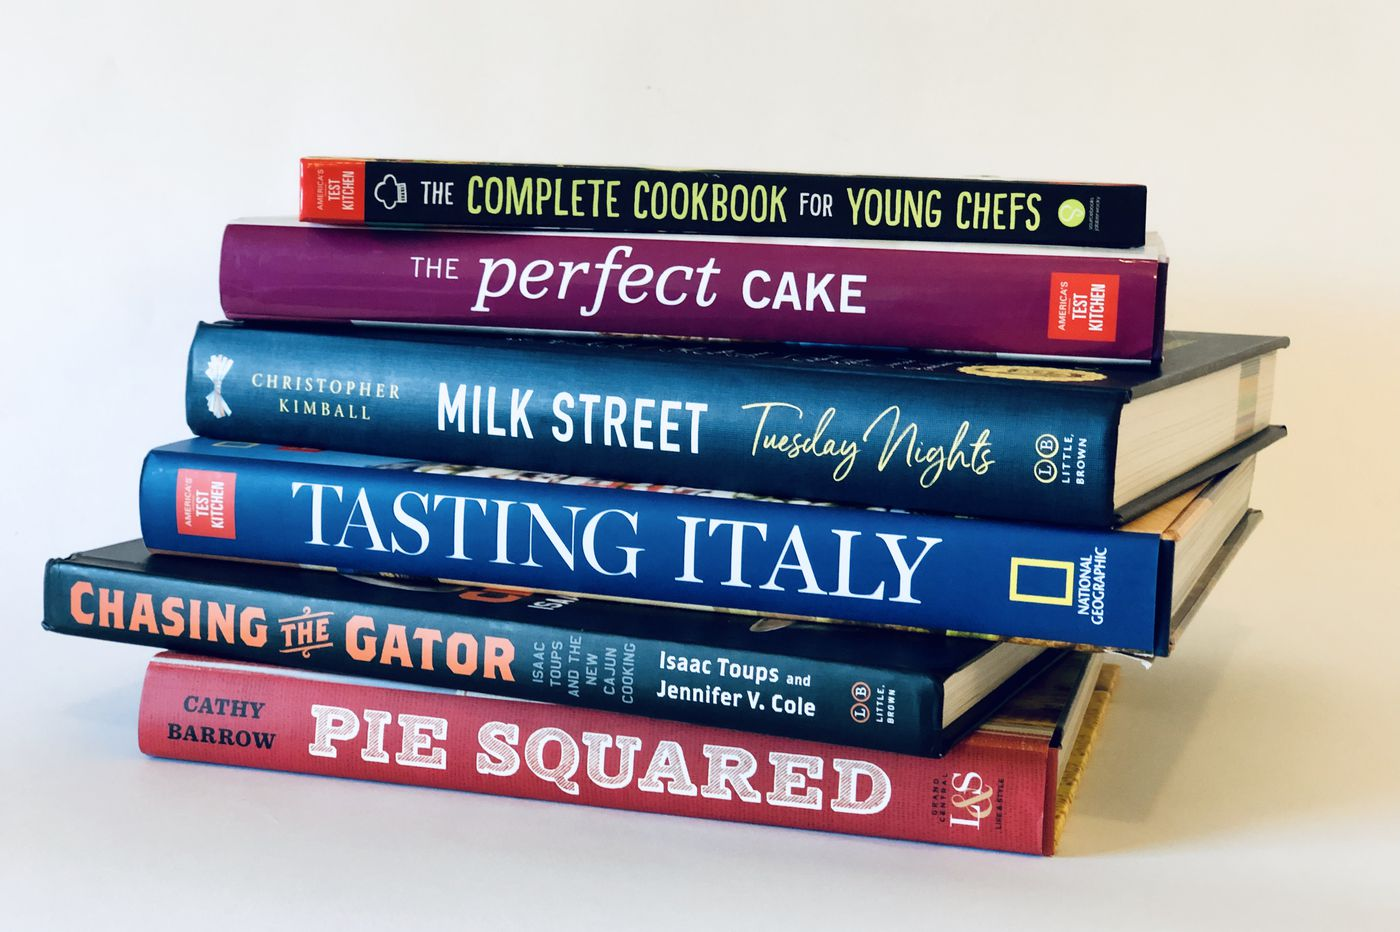 Recommendations for cookbooks to comfort, teach, and bring sweetness